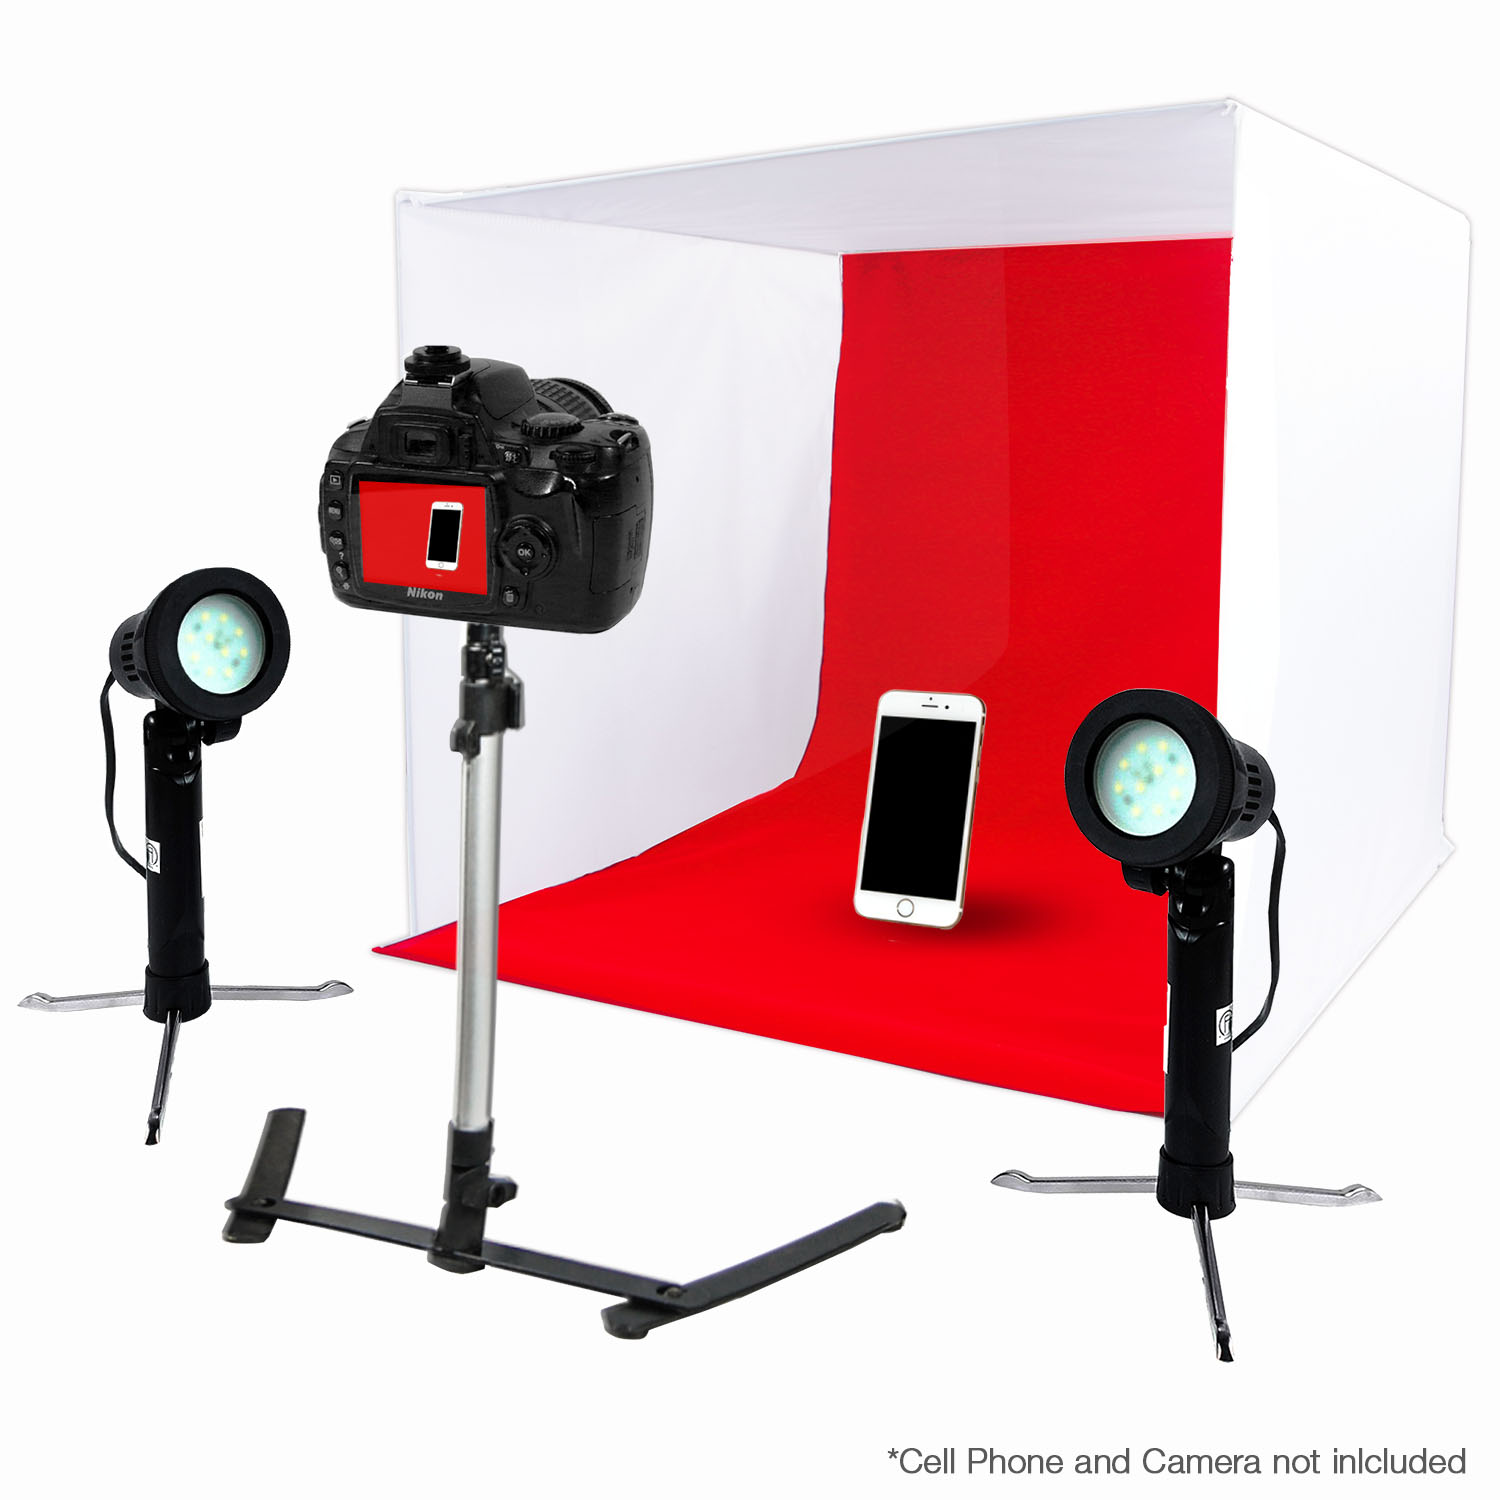 "24"" LED Folding Tabletop Photo Tent Cube Box Lighting Kit with 2x Portable LED Lights, 1x Tripod, 4x Backdrops by Loadstone Studio WMLS0061"